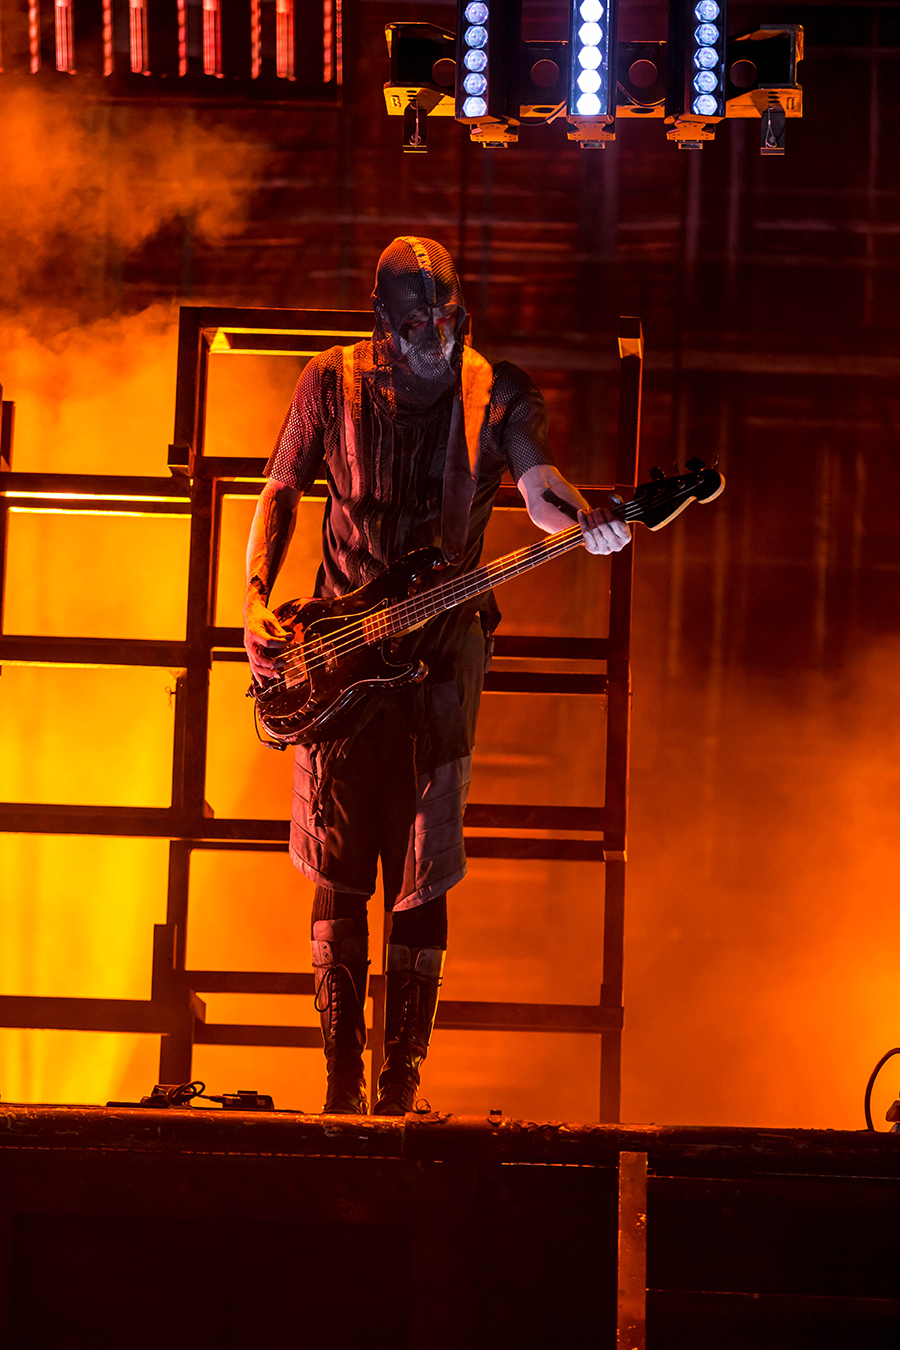 4I0A0407 Rammstein breaths fire into the crowd at Hollywood Casino Amphitheater